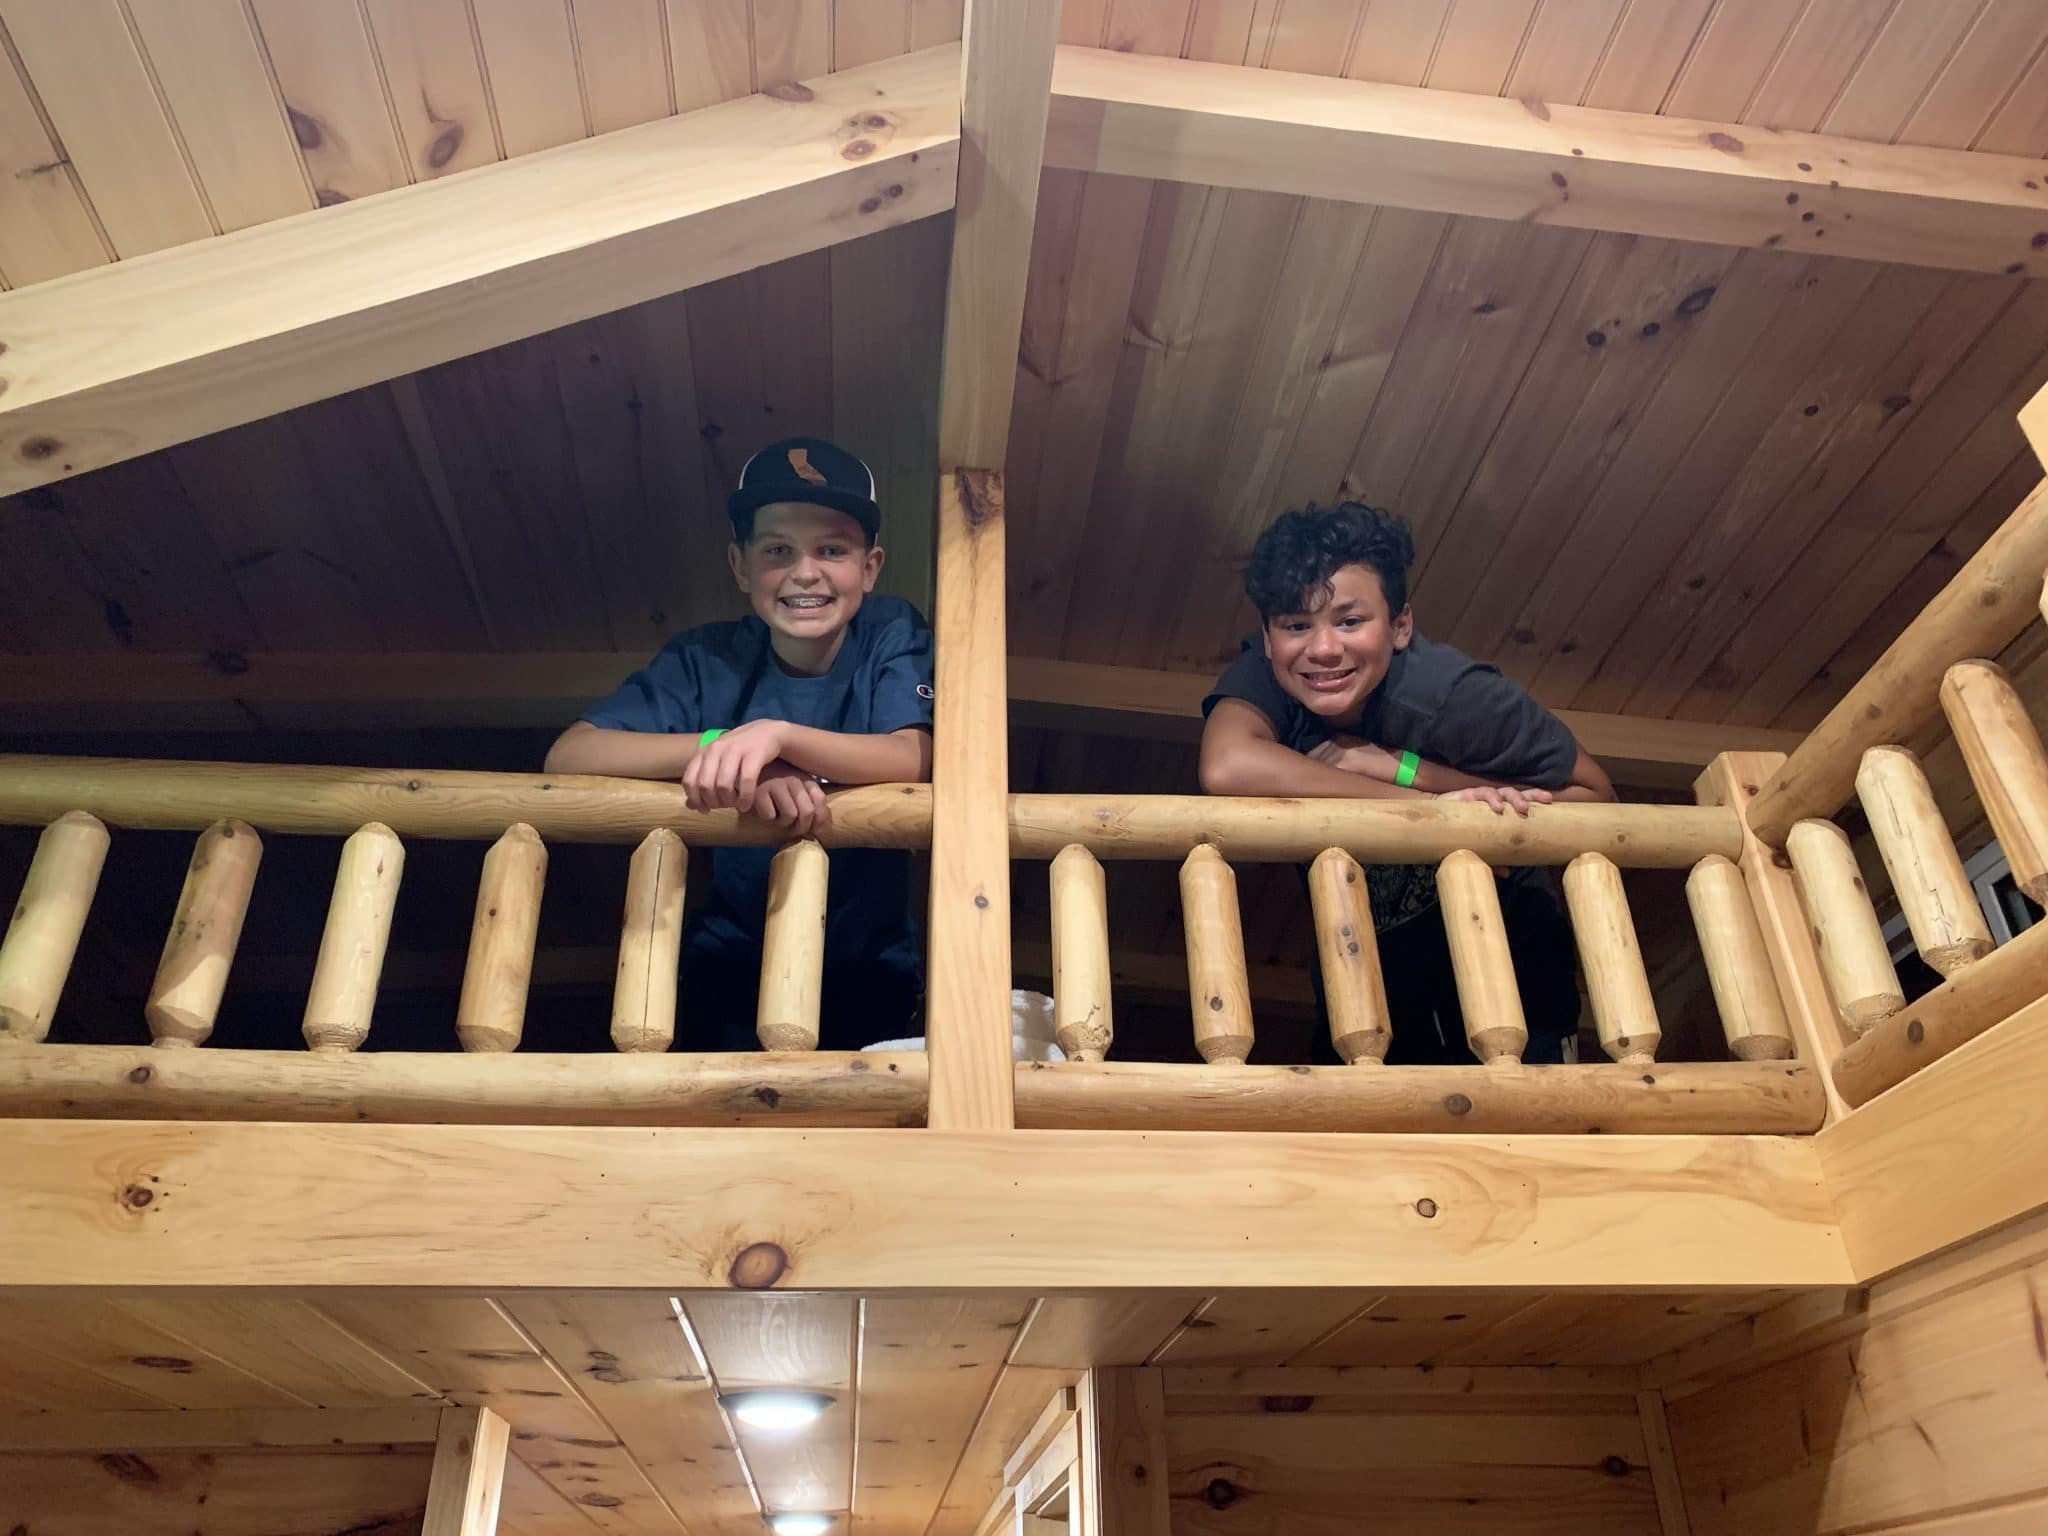 Sycamore Loft Cabin, Jellystone Golden Valley, North Carolina Camping, Glamping, Stilettos and Diapers